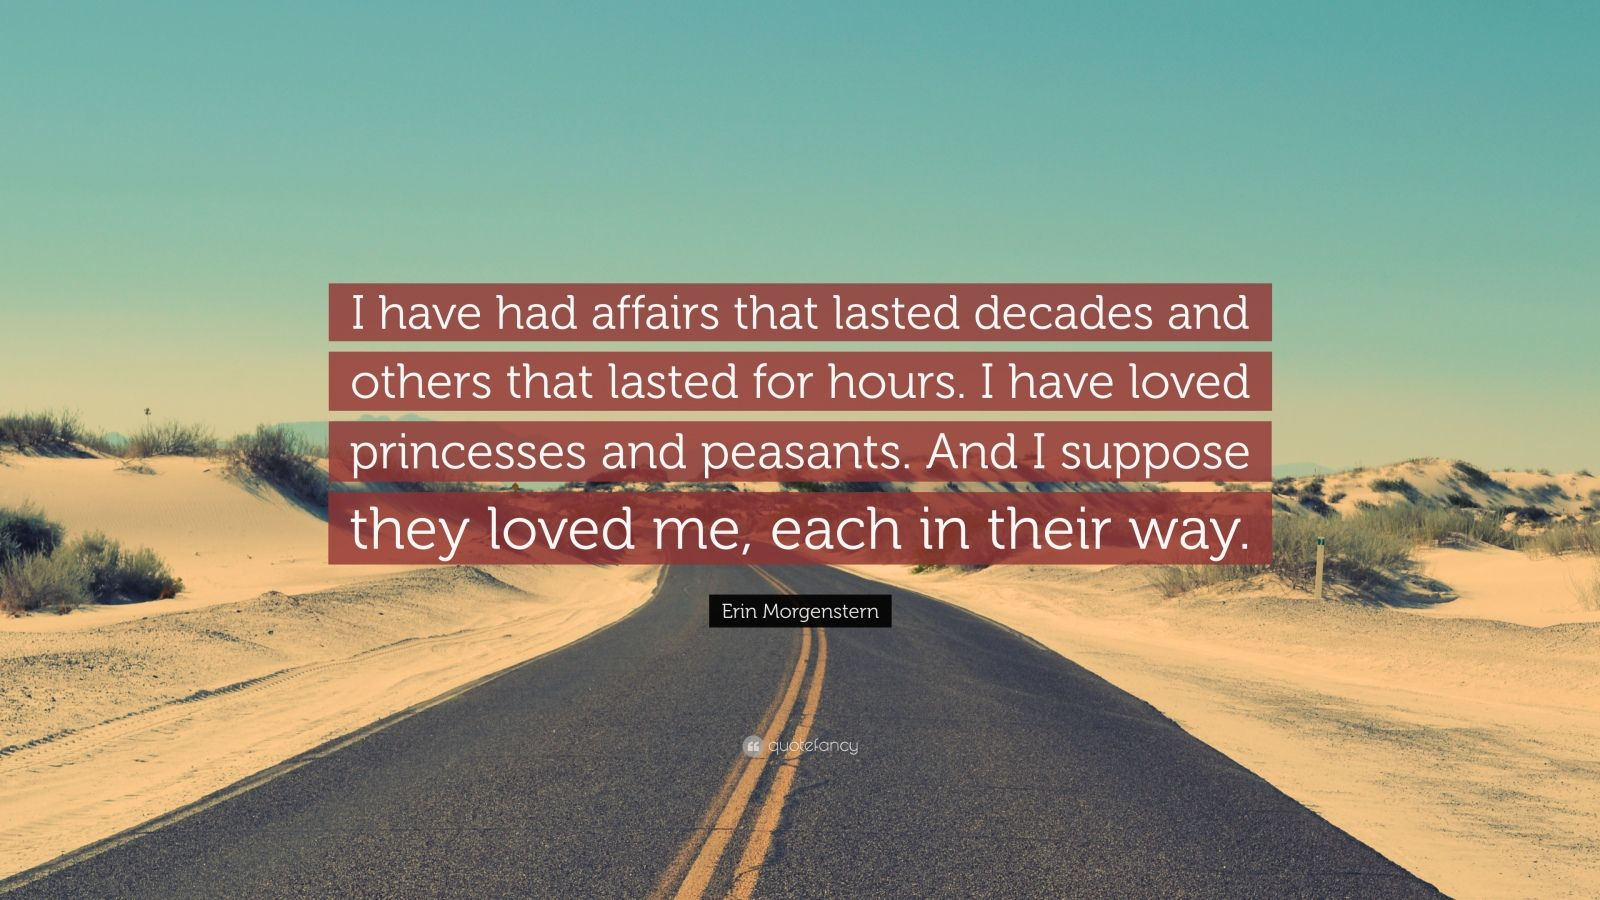 """Erin Morgenstern Quote: """"I have had affairs that lasted decades and others that lasted for hours. I have loved princesses and peasants. And I suppose they loved me, each in their way."""""""